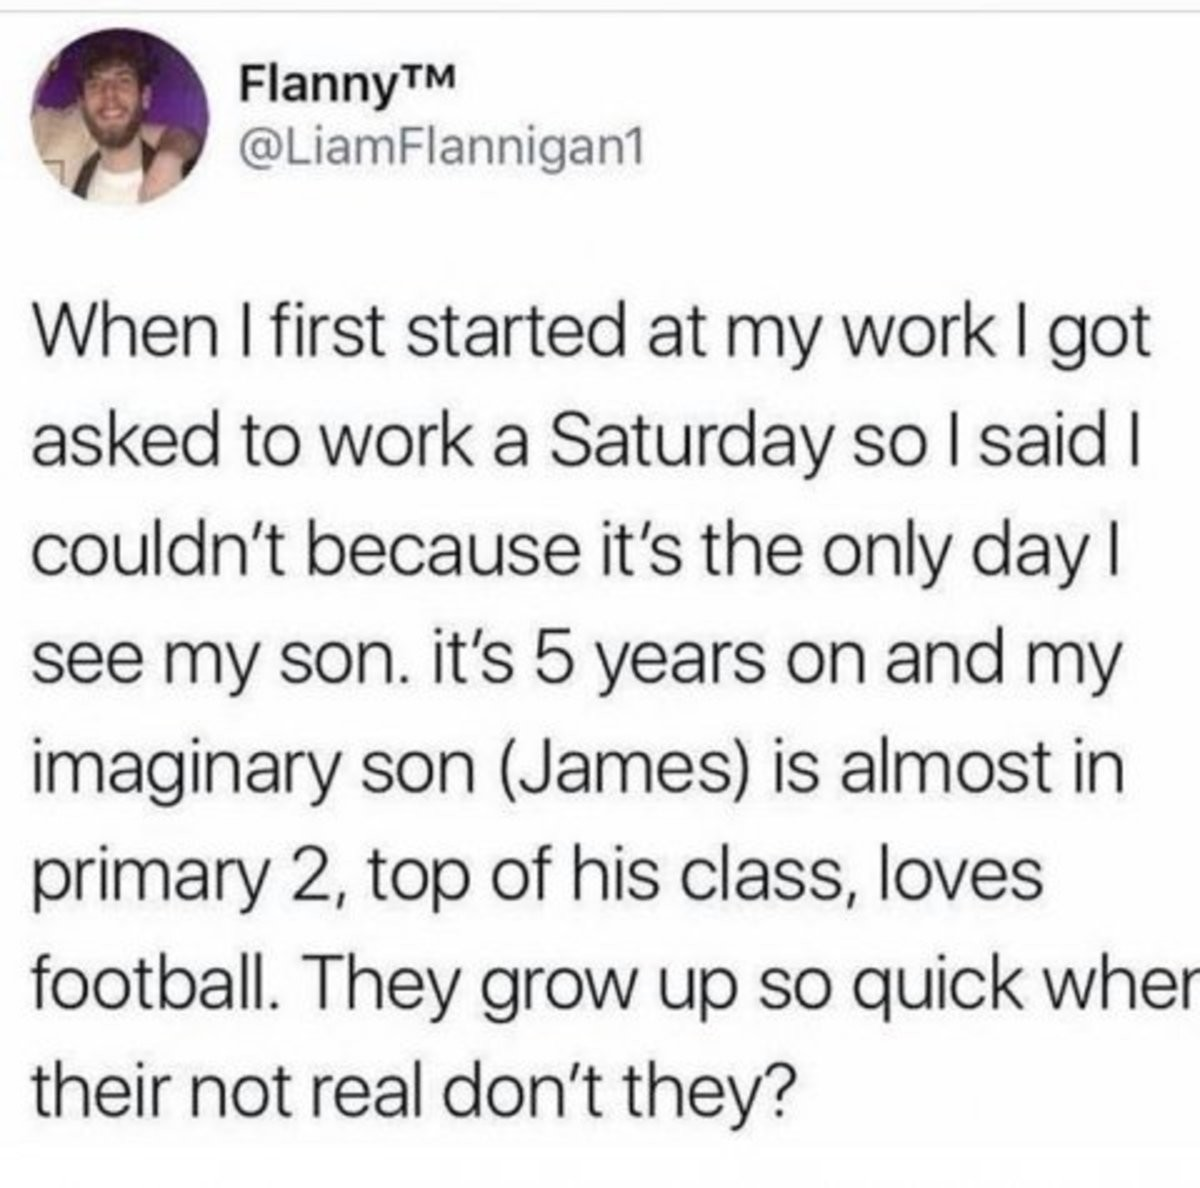 """productive pleasant Peafowl. .. Then a Coworker invites you to a SuperBowl party and tells you """"Susan's bringing her kids, you should bring James."""" What do you do, FJ?"""